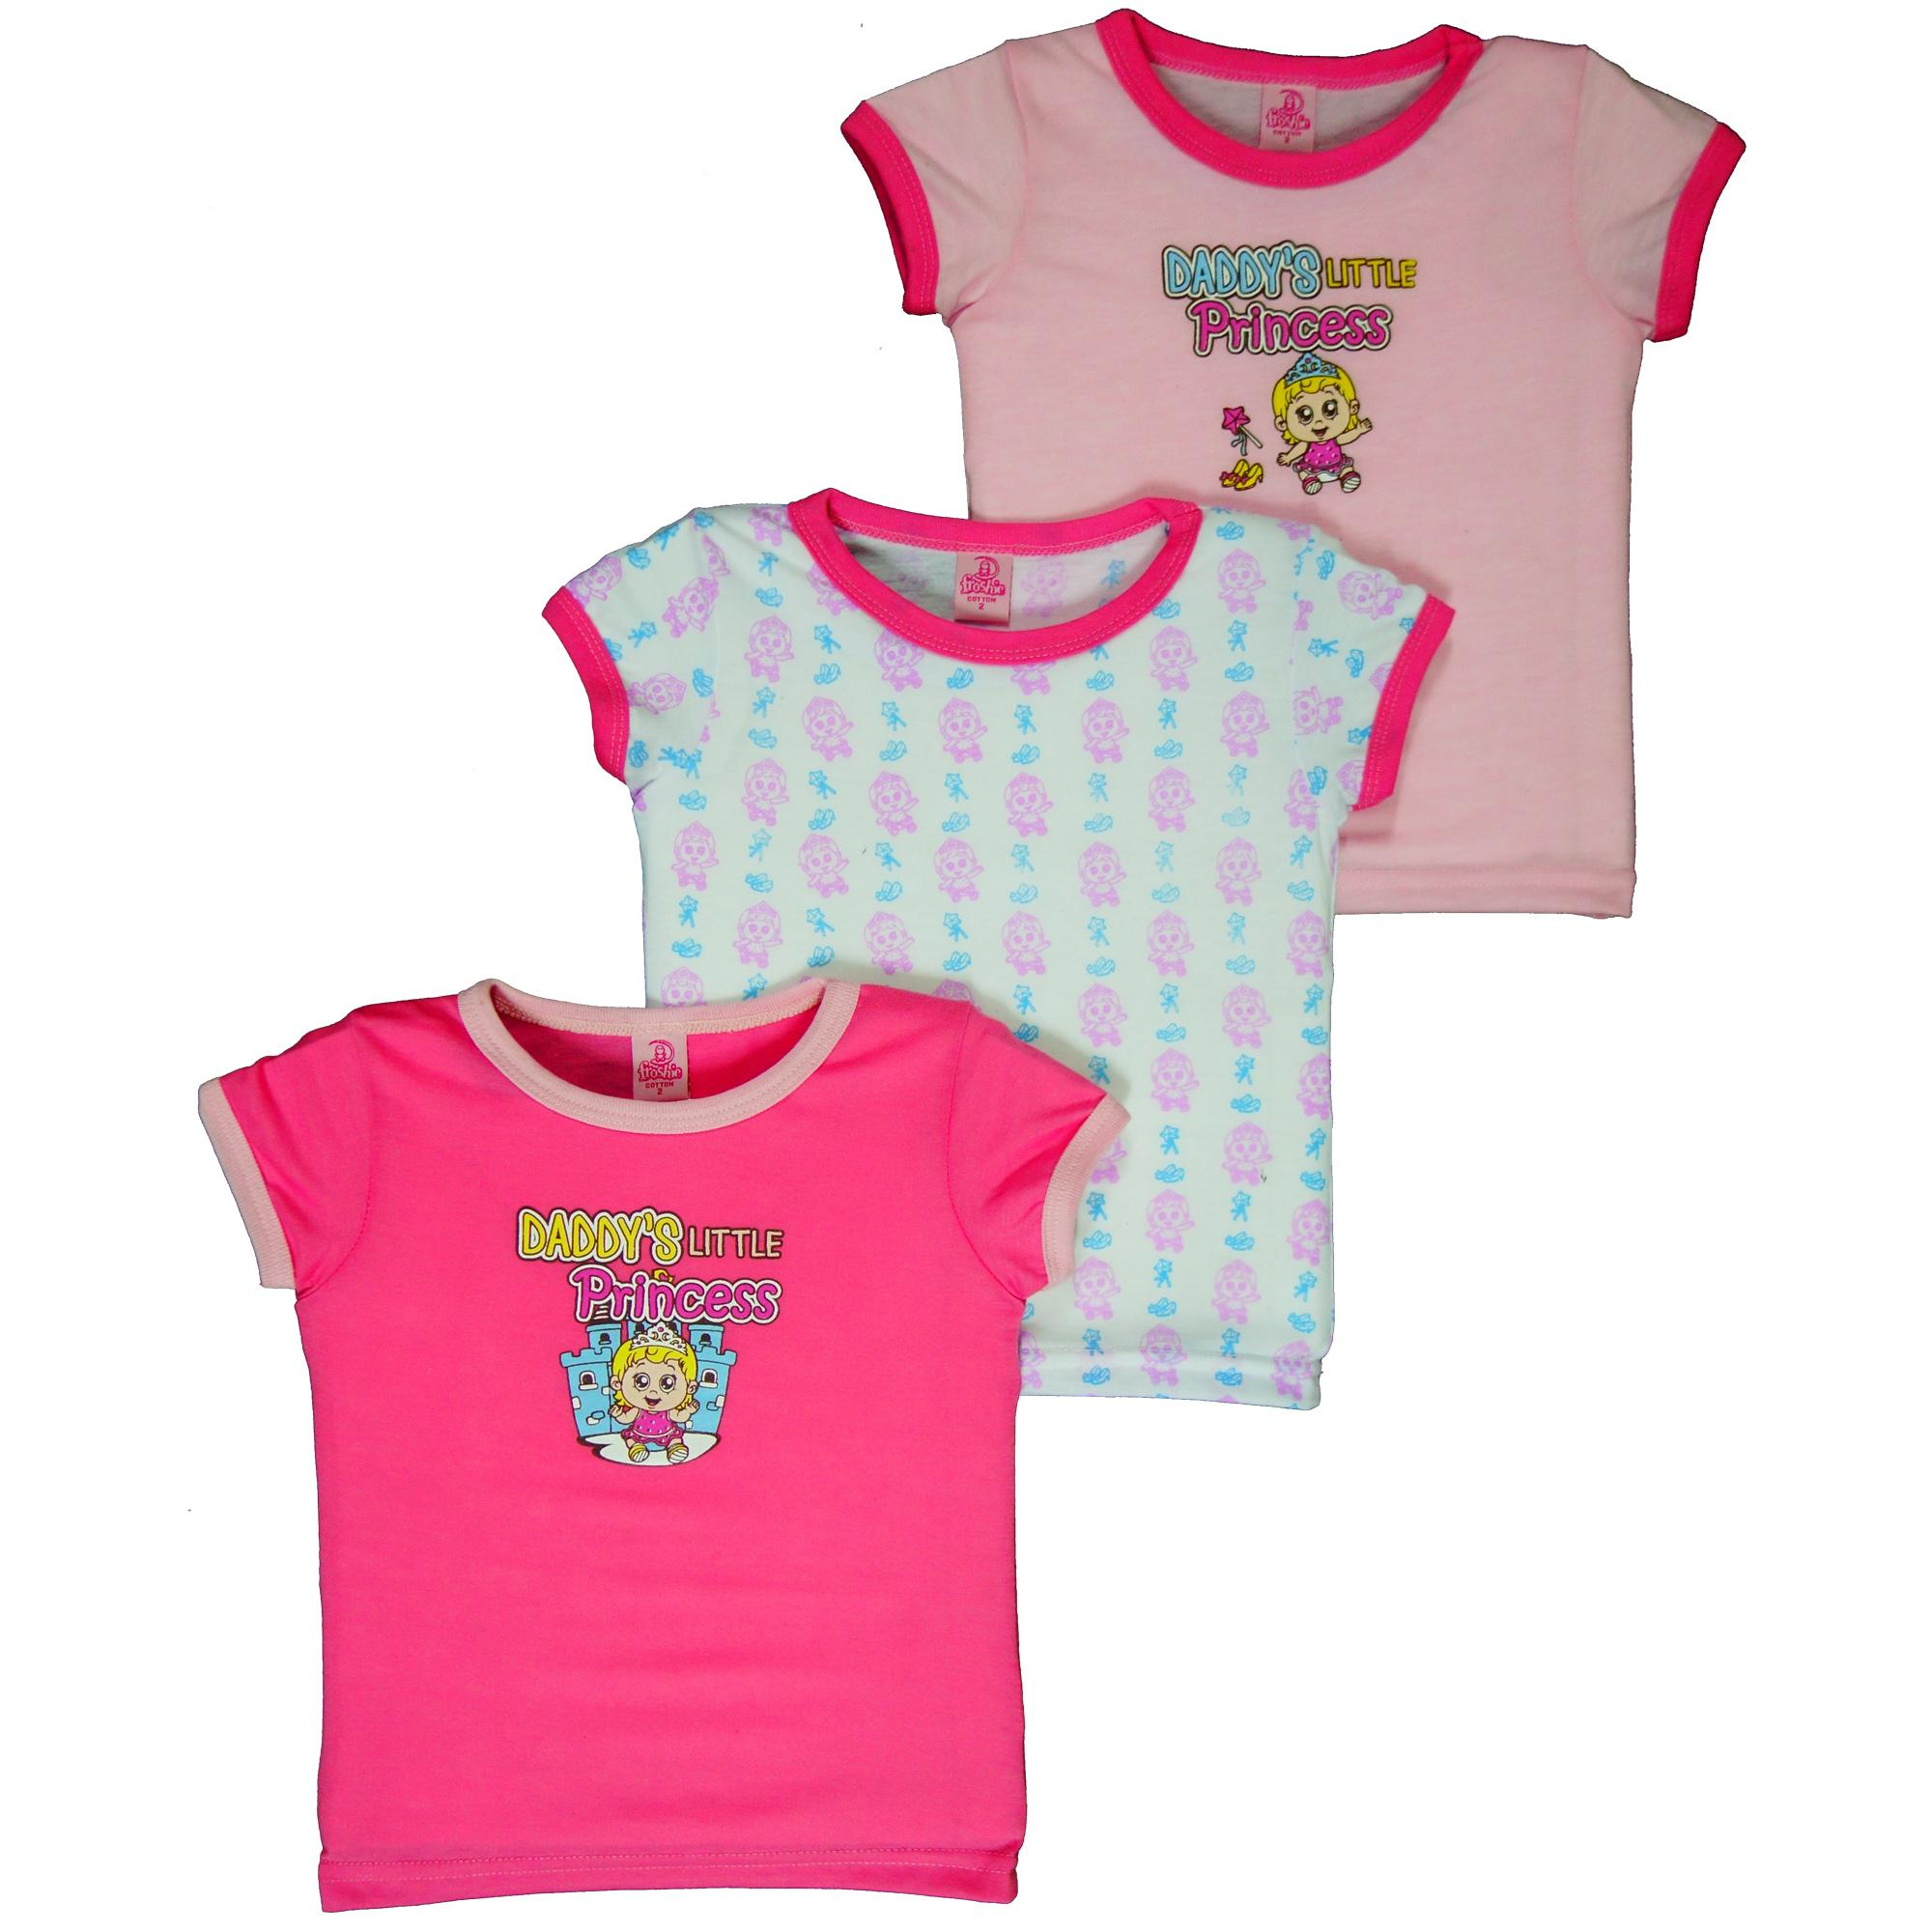 Girls Top Tees for sale - Shirts for Baby Girls online brands ... 43bab944f